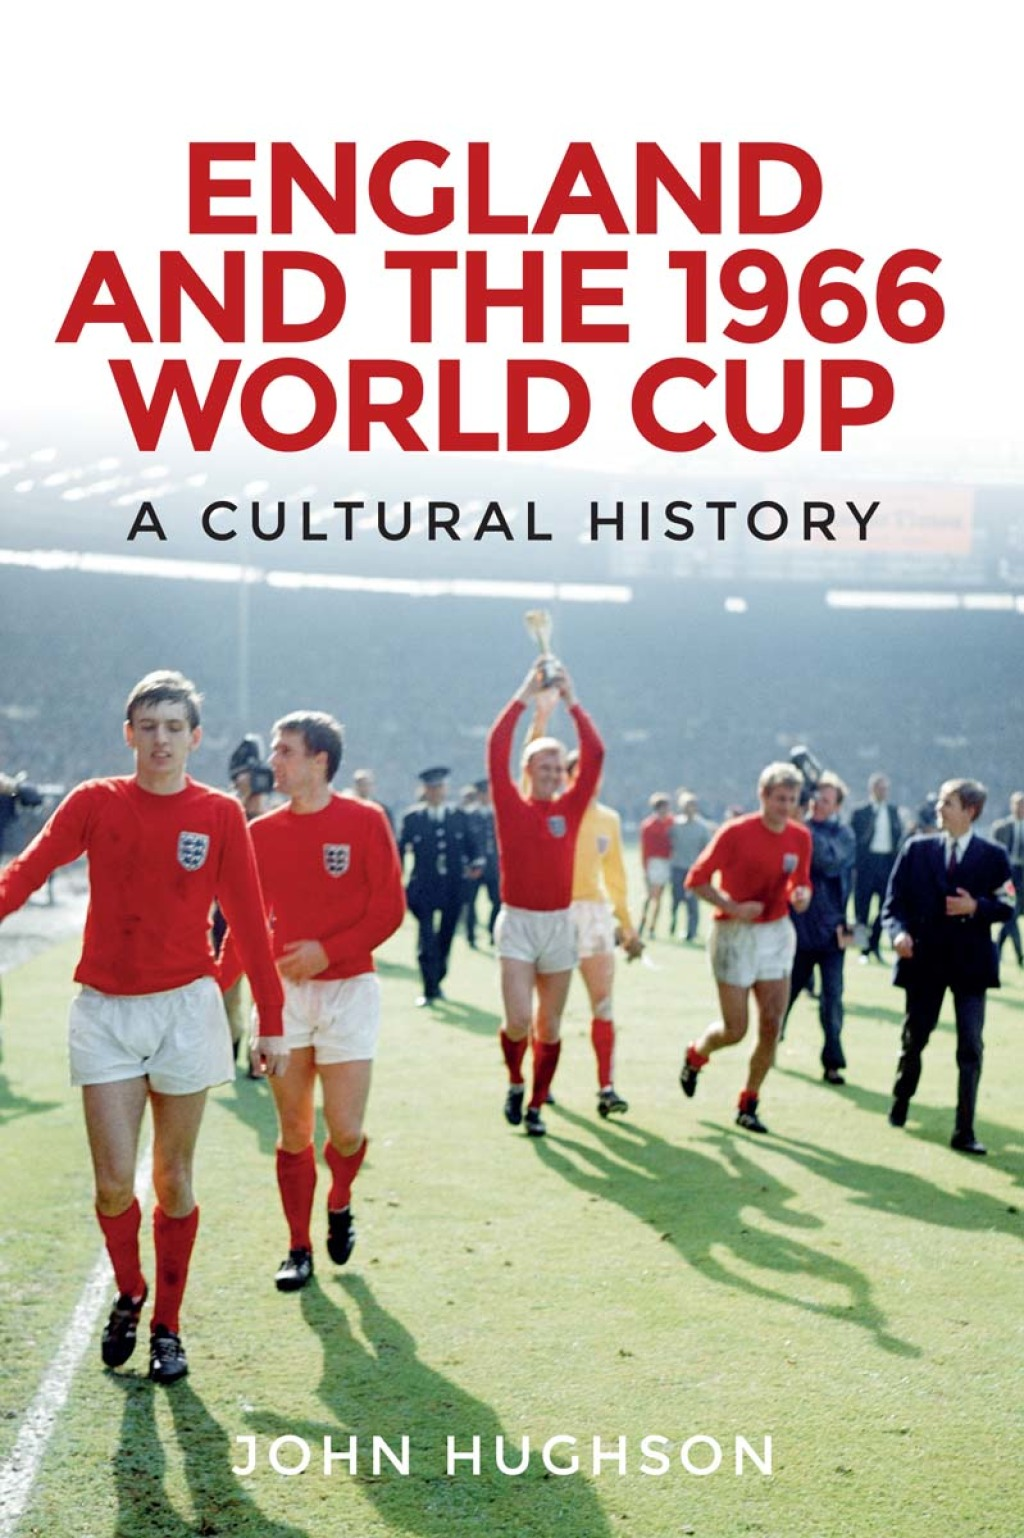 England and the 1966 World Cup (ebook) eBooks